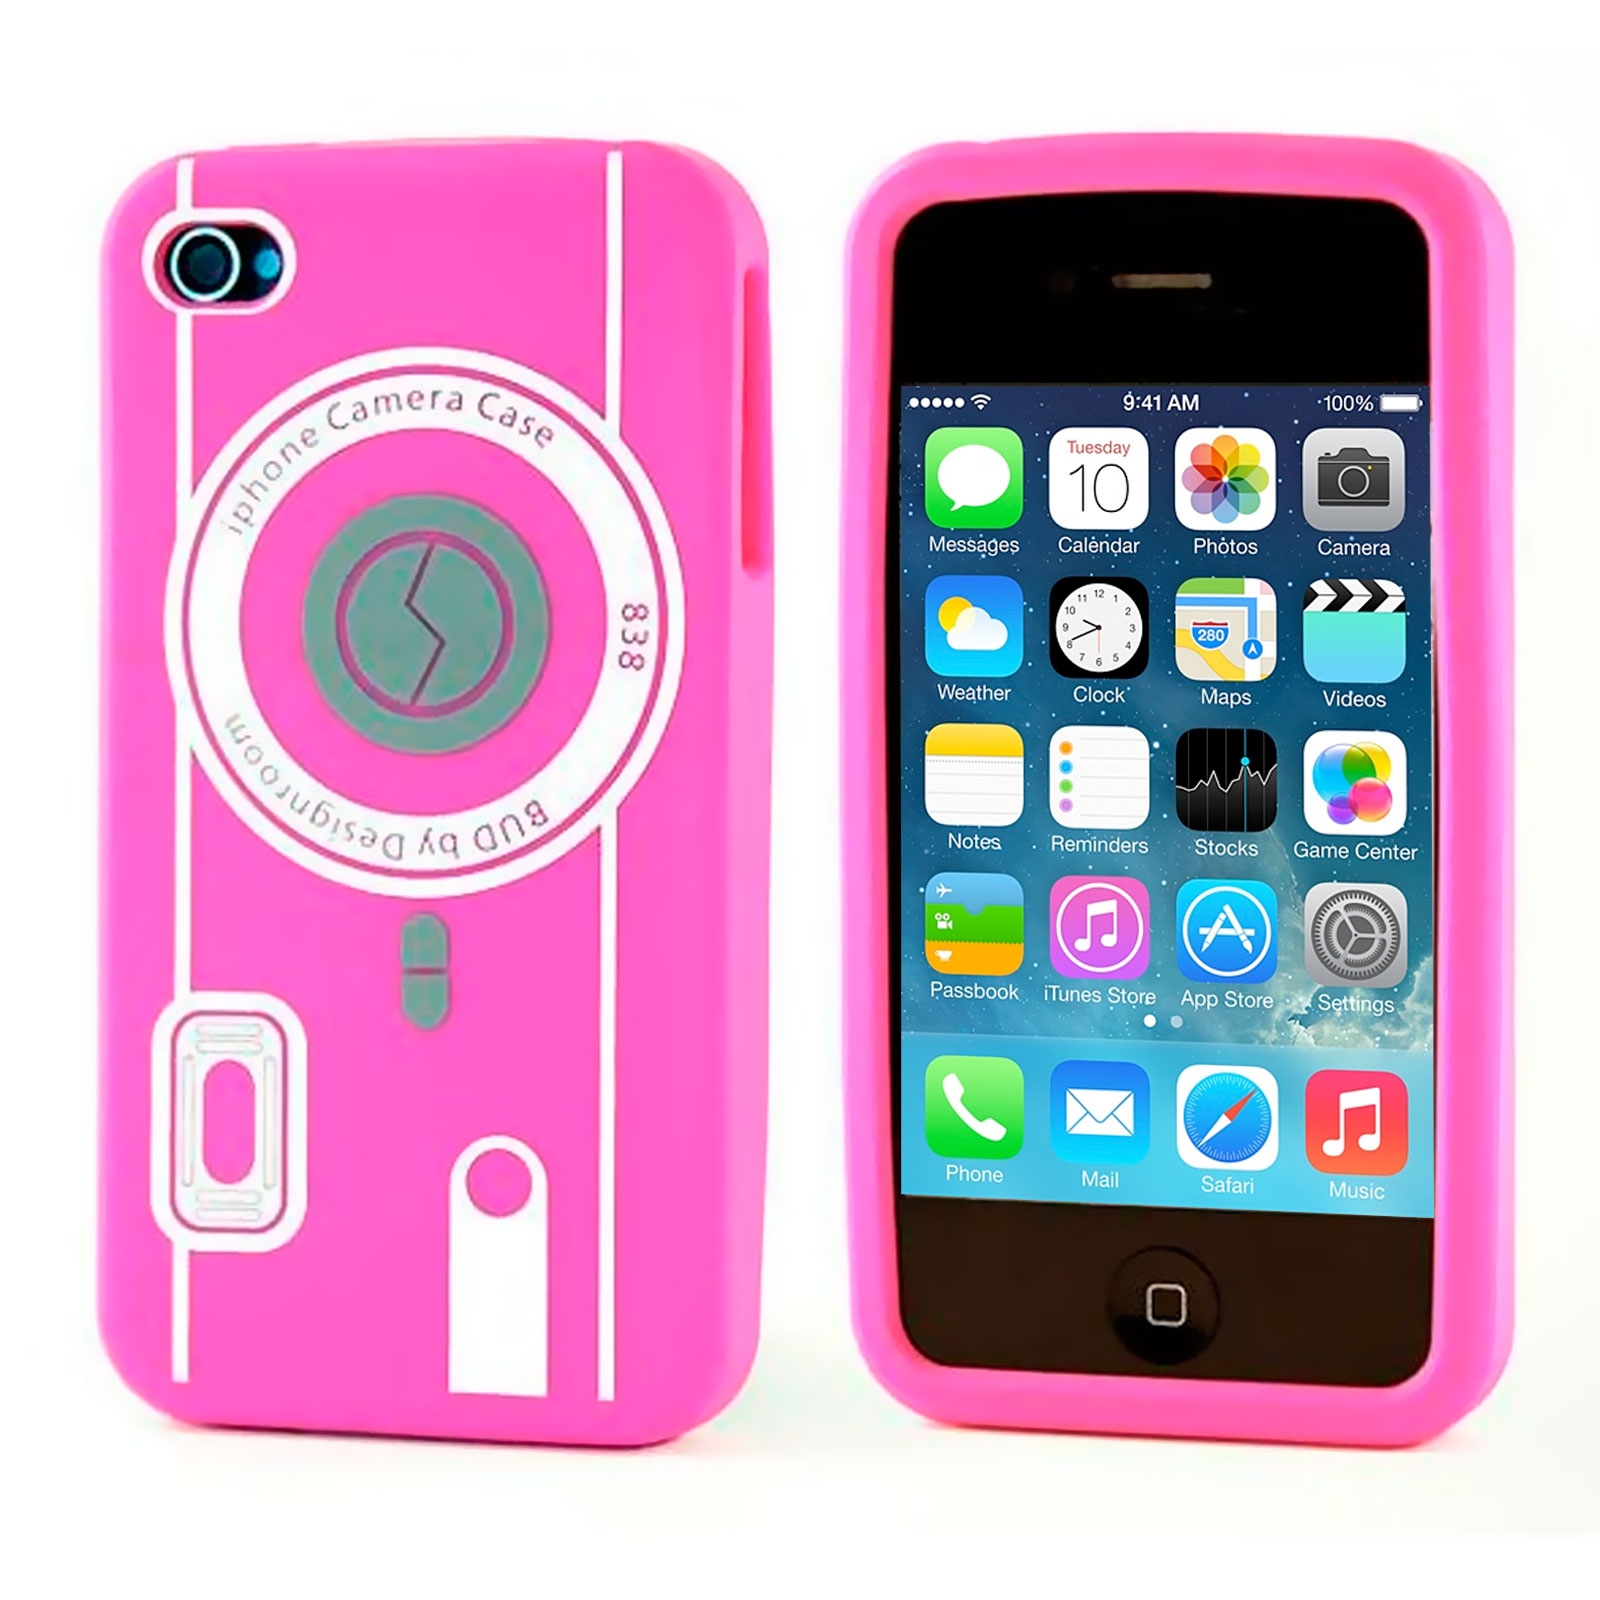 Coque housse silicone camera rose pour iphone 4s 4 for Housse iphone 4s